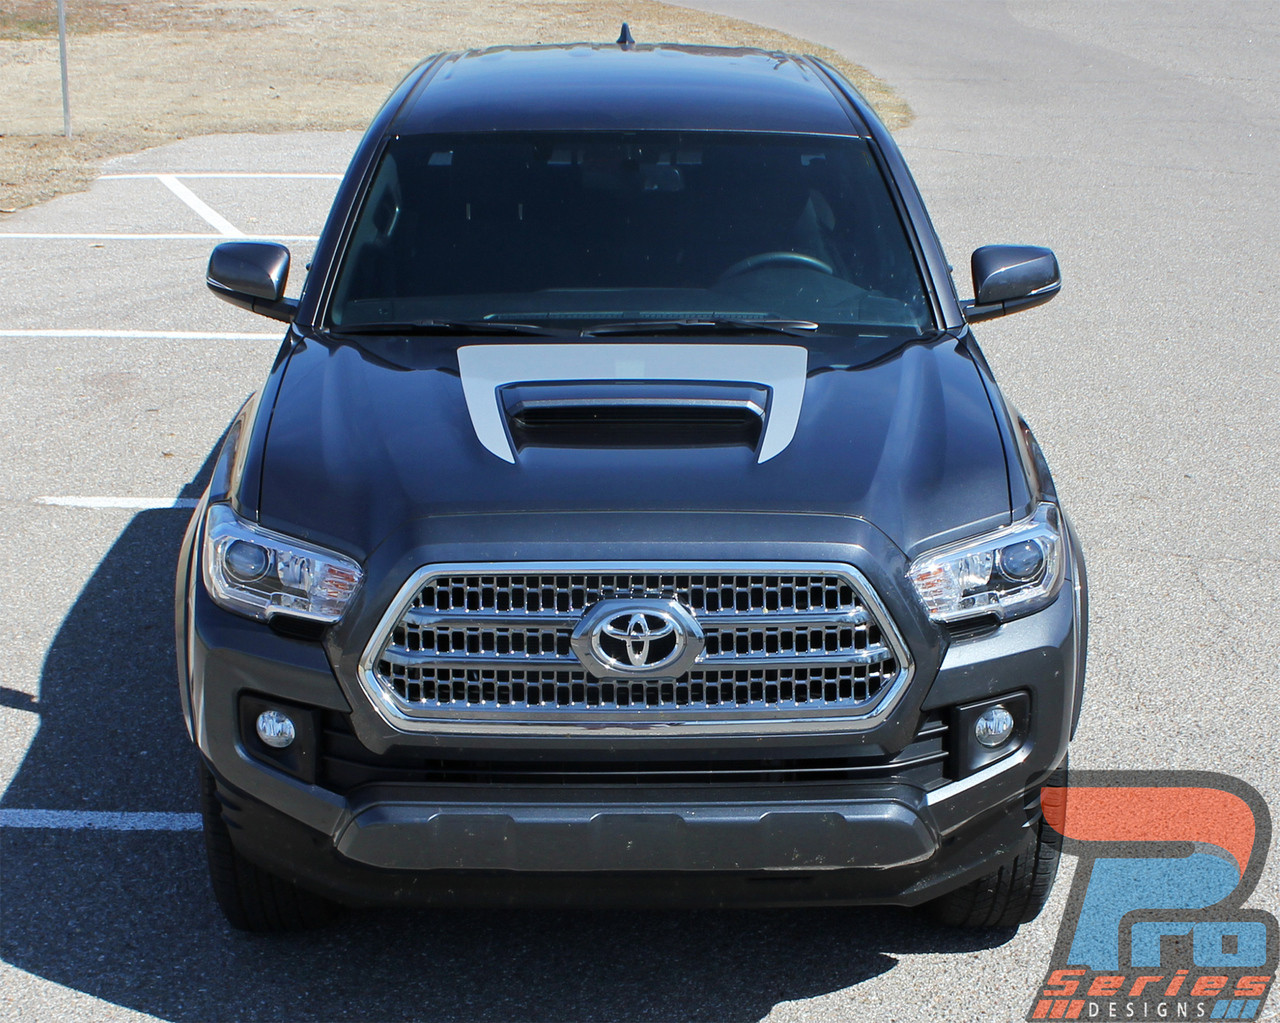 toyota stripes vinyl sport hood striping kit vgp and trim trd pro graphic graphics decal decals accent tacoma